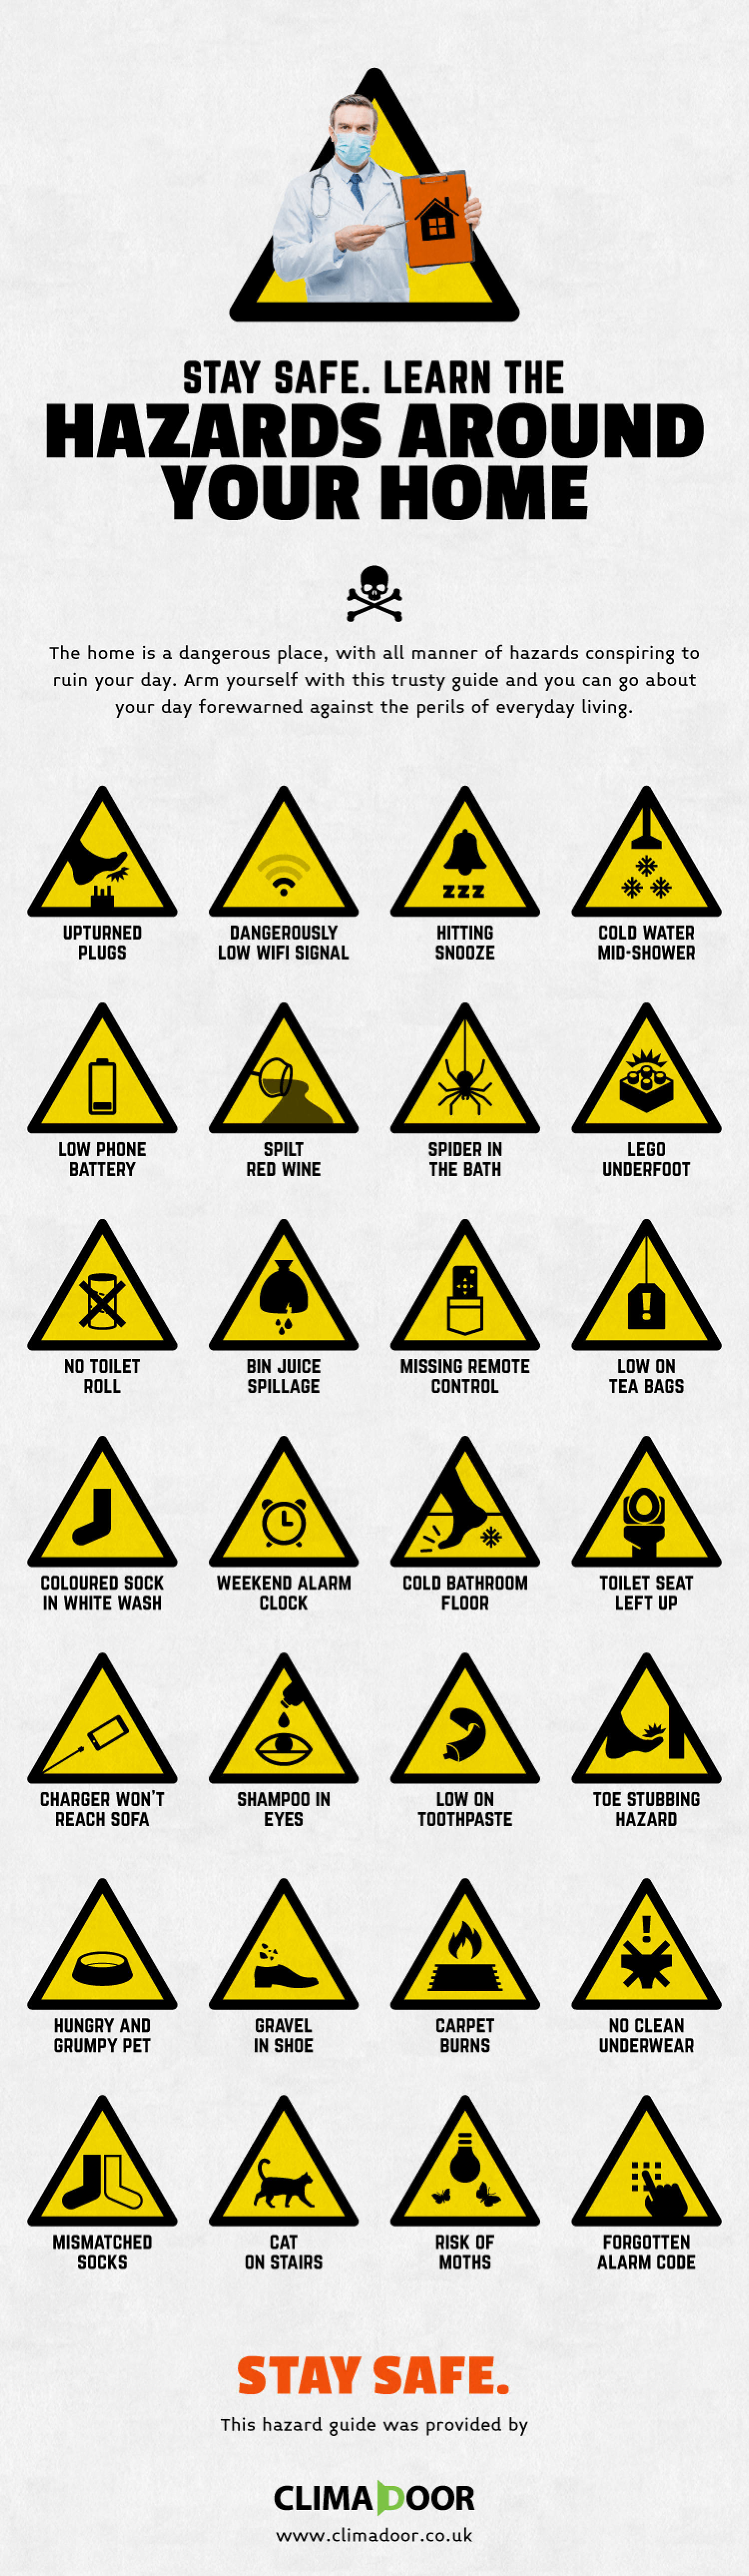 Stay Safe: Learn the hazards around your home Infographic